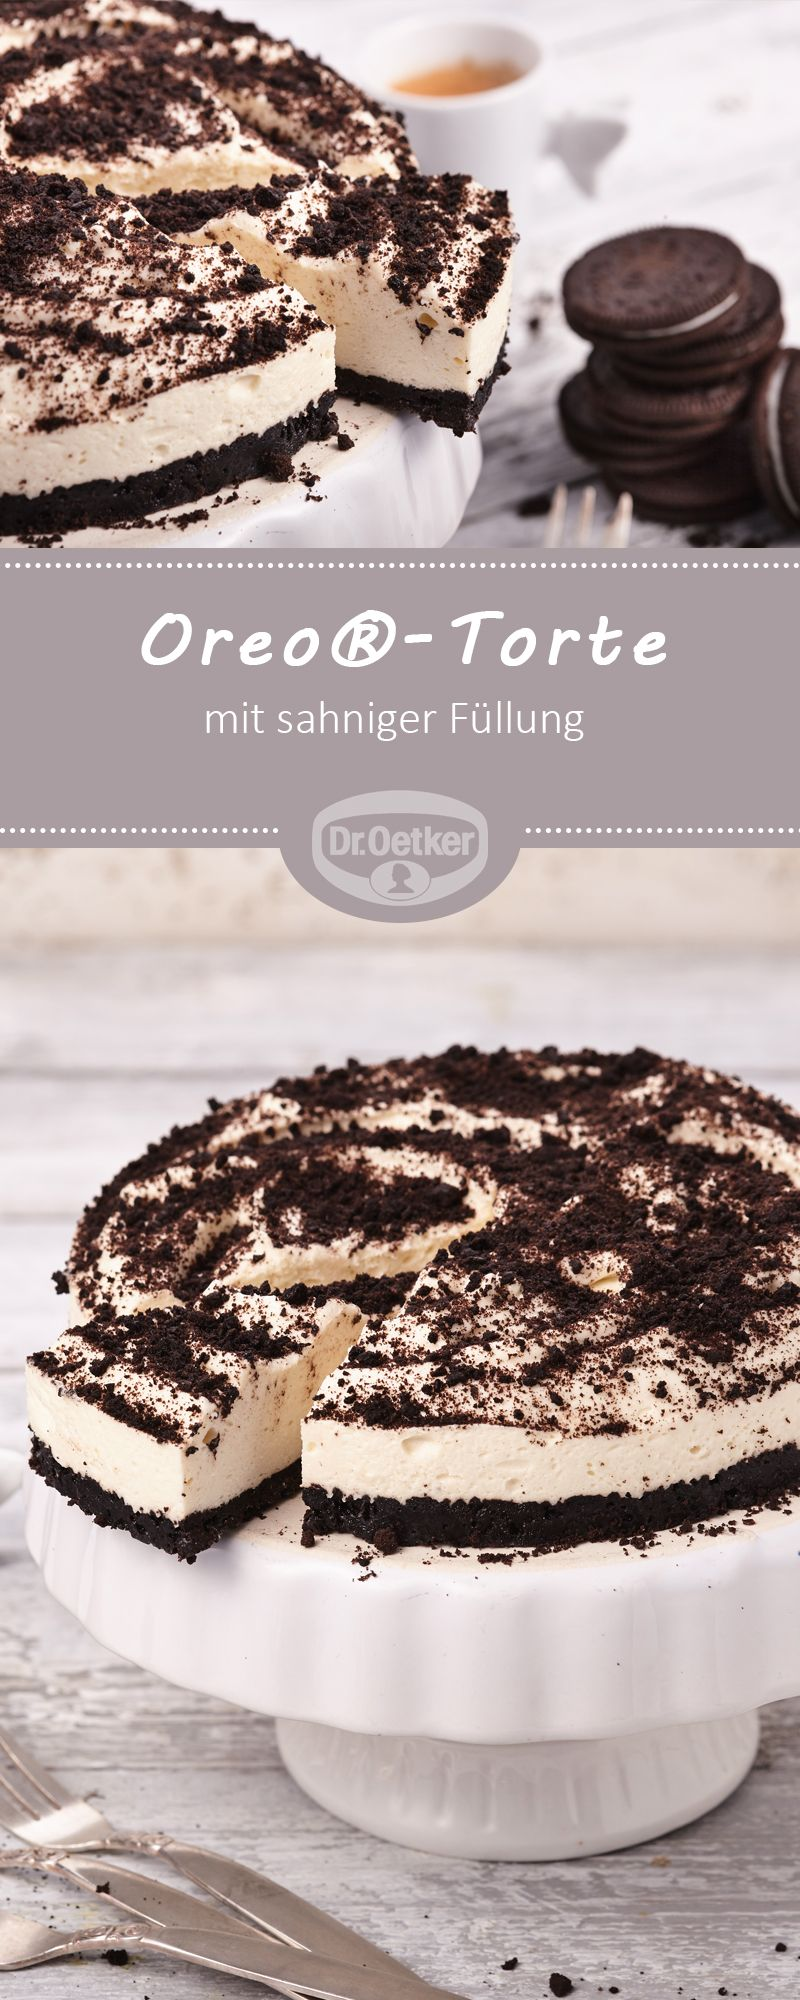 Oreo Kuchen Backmischung Oreo Torte Recipe Pinterest Oreo Kuchen And Food